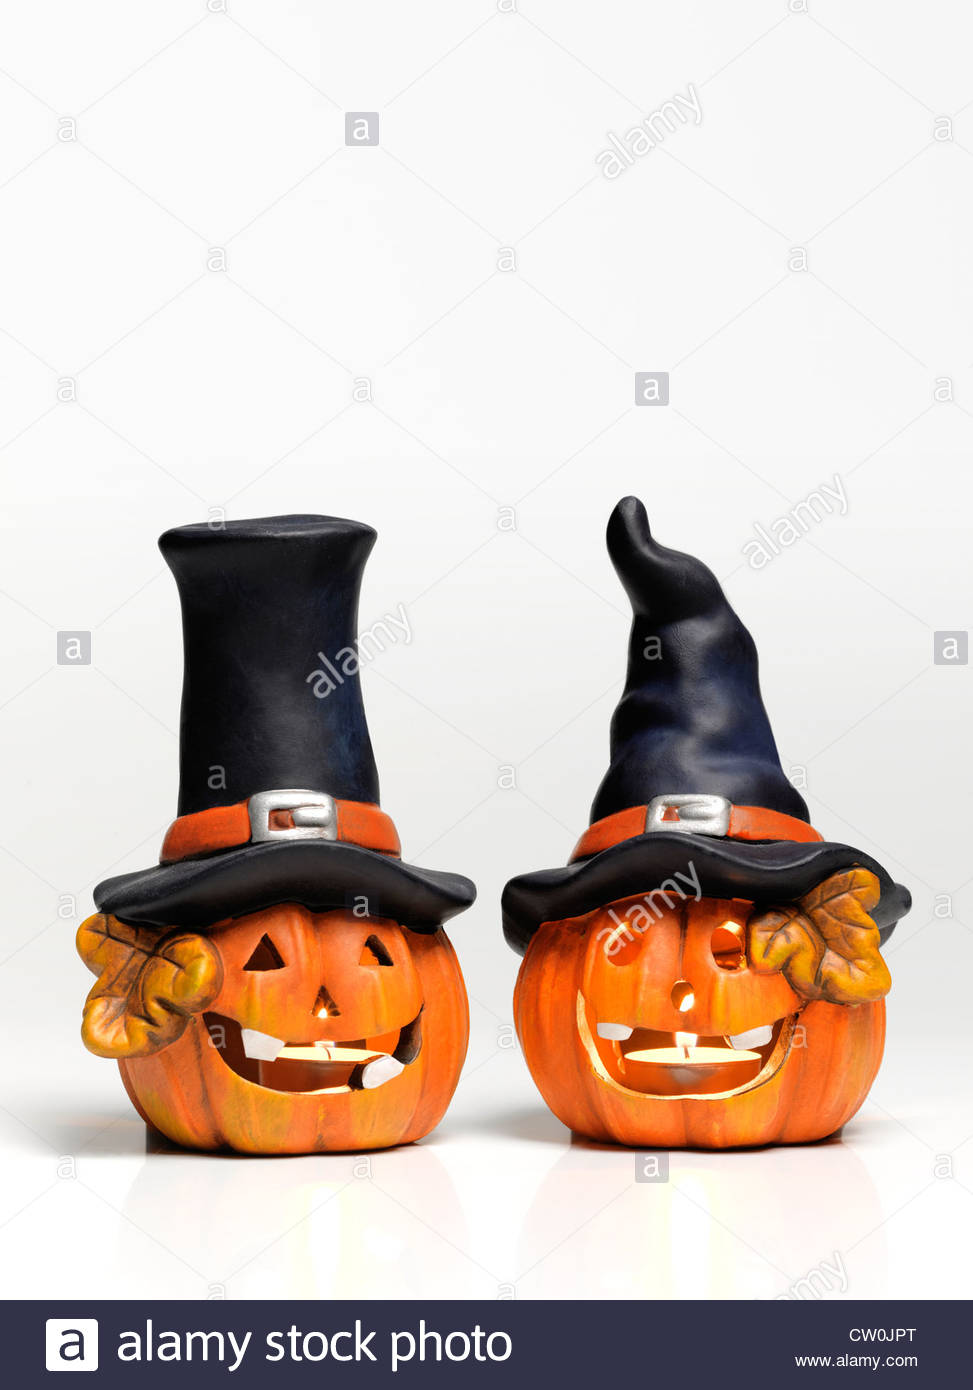 halloween pumpkin figures CW0JPT